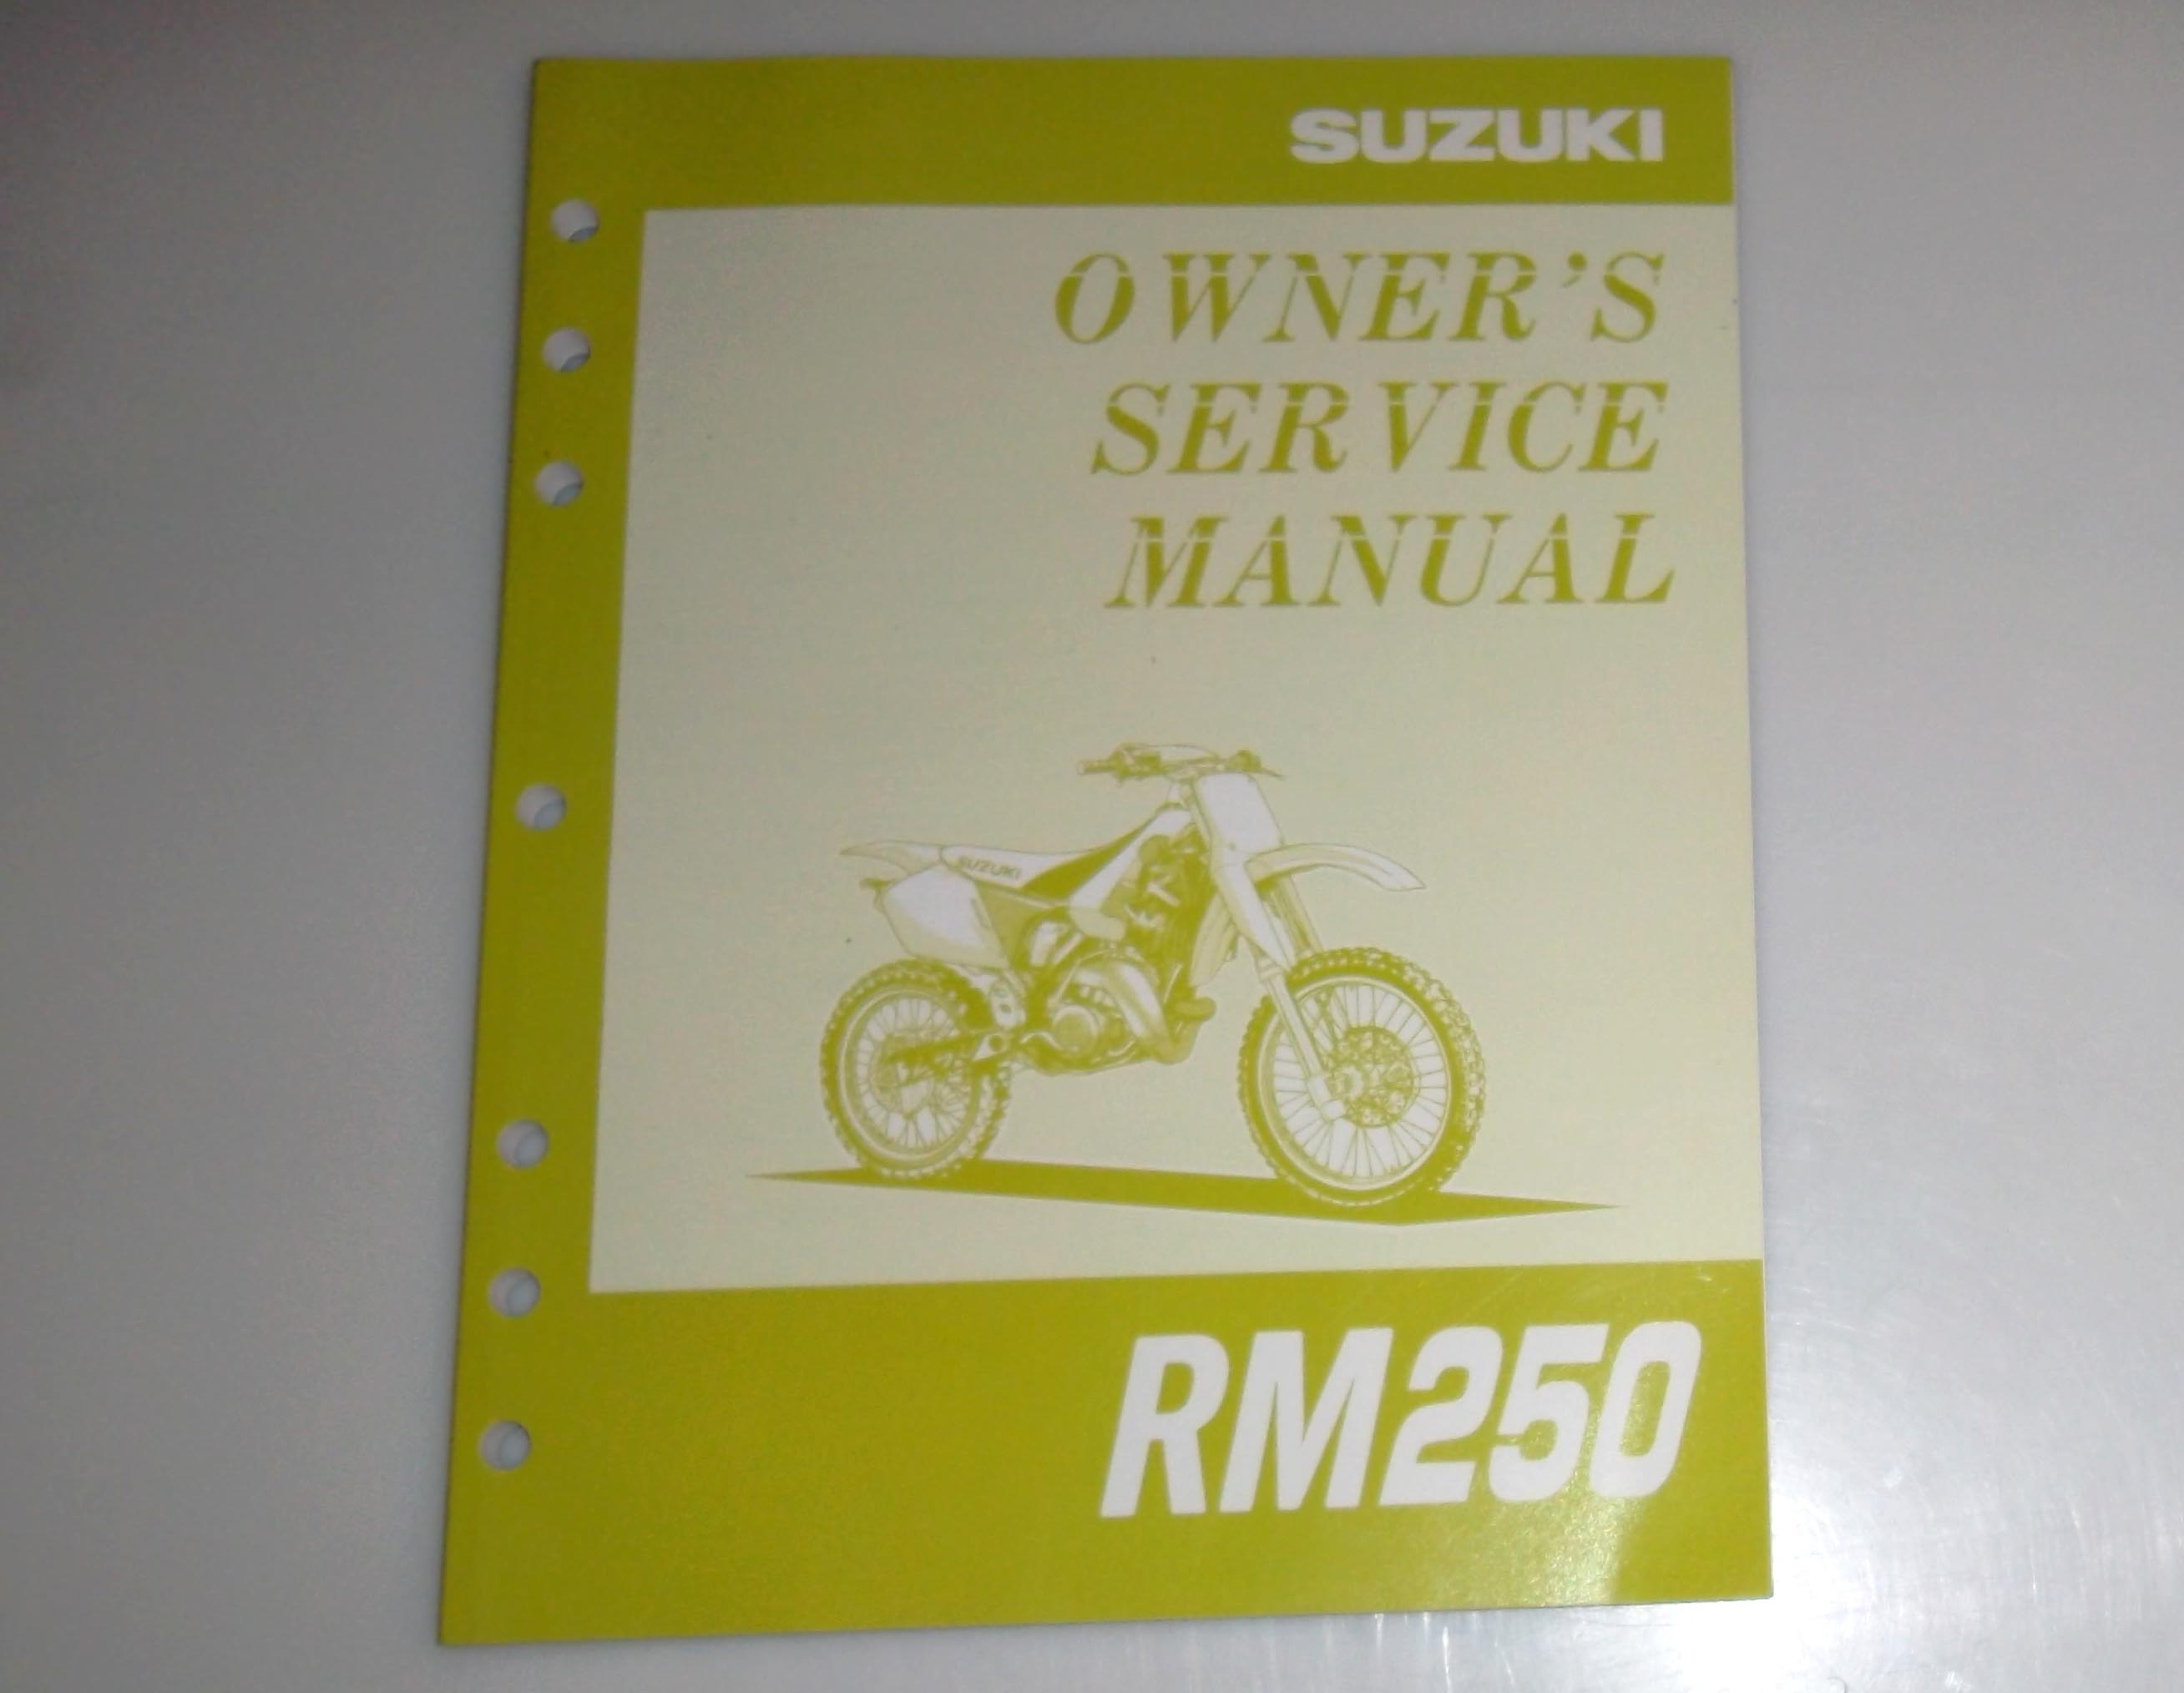 1995 suzuki rm250 owner s service manual rh fullfloater com suzuki rm 250 owners manual suzuki rmz 250 service manual 2008